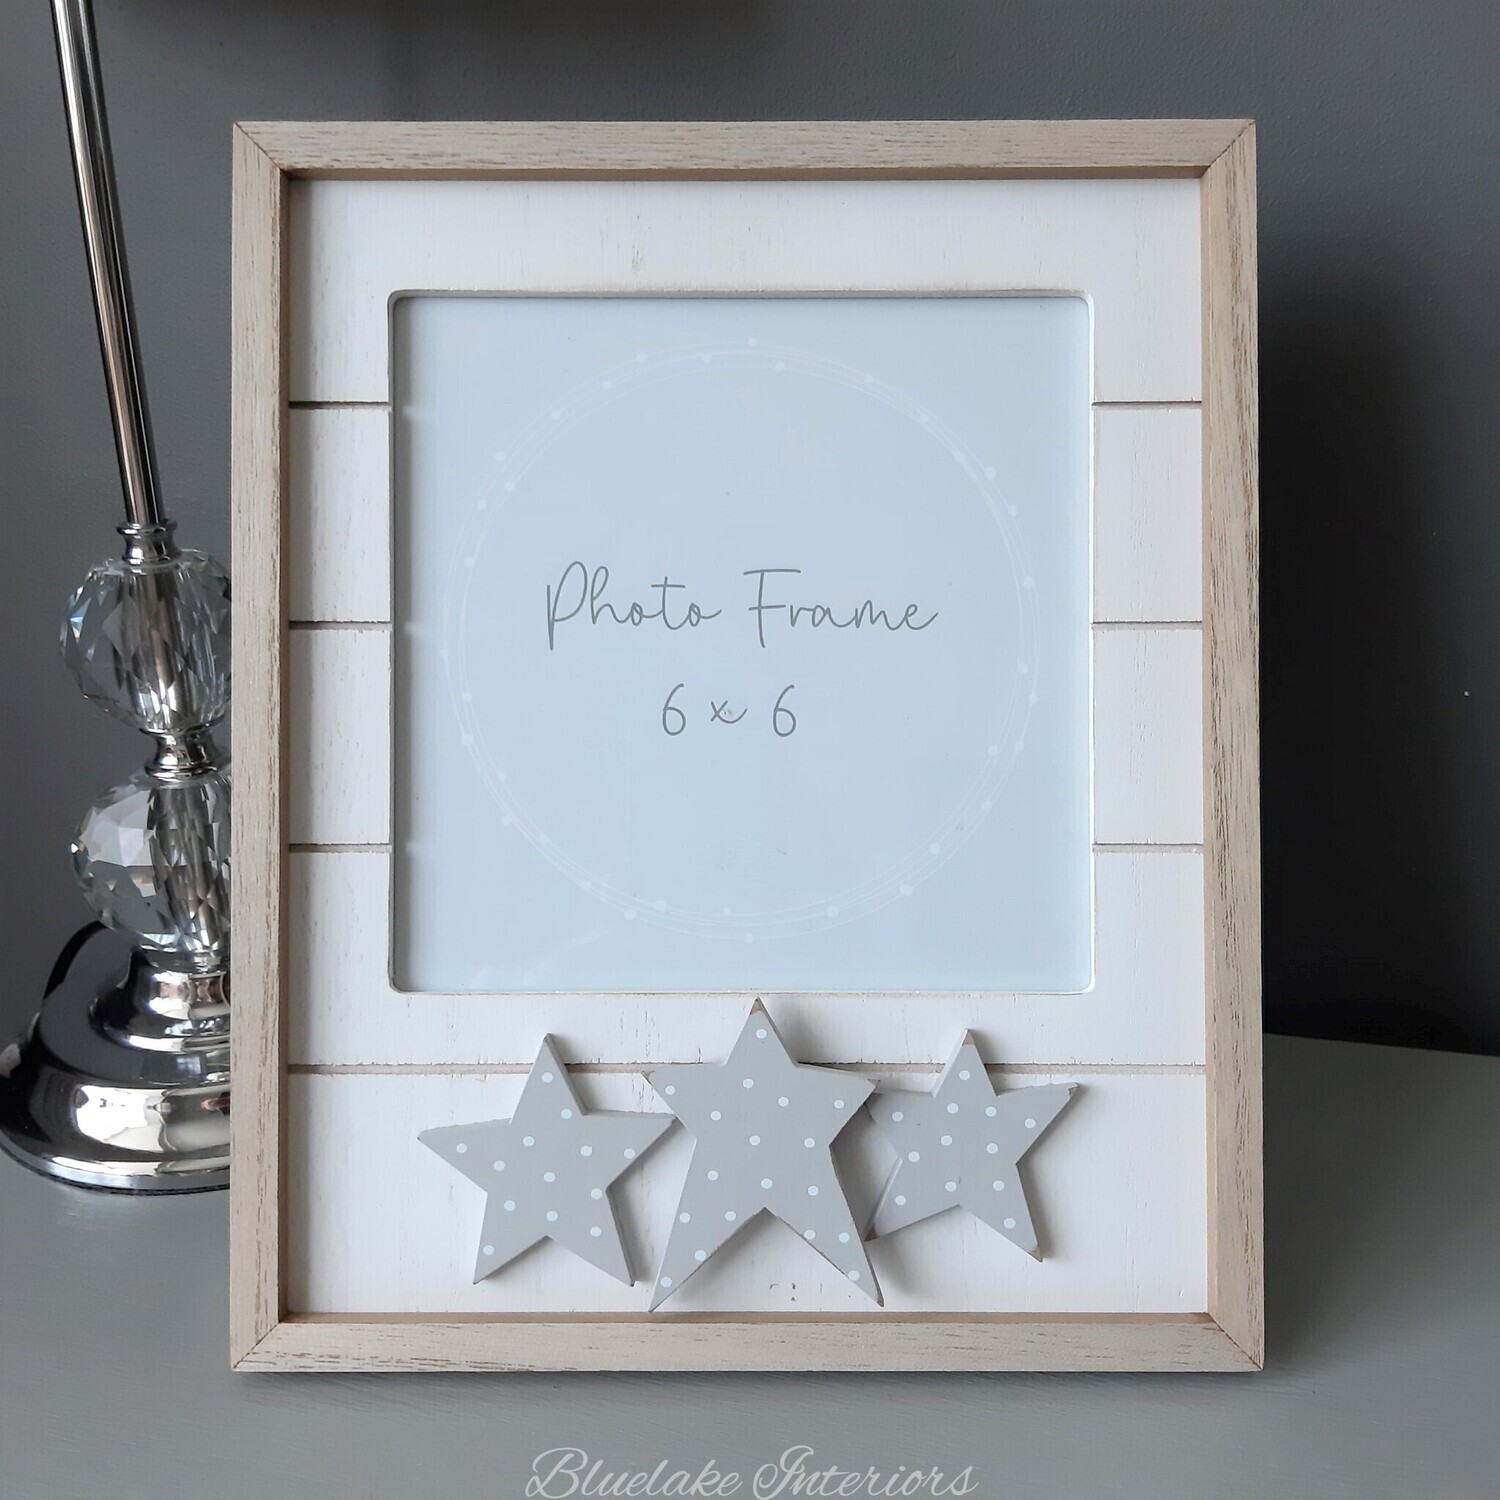 Cream Wooden Slatted Photo Frame Featuring 3 Wooden Stars